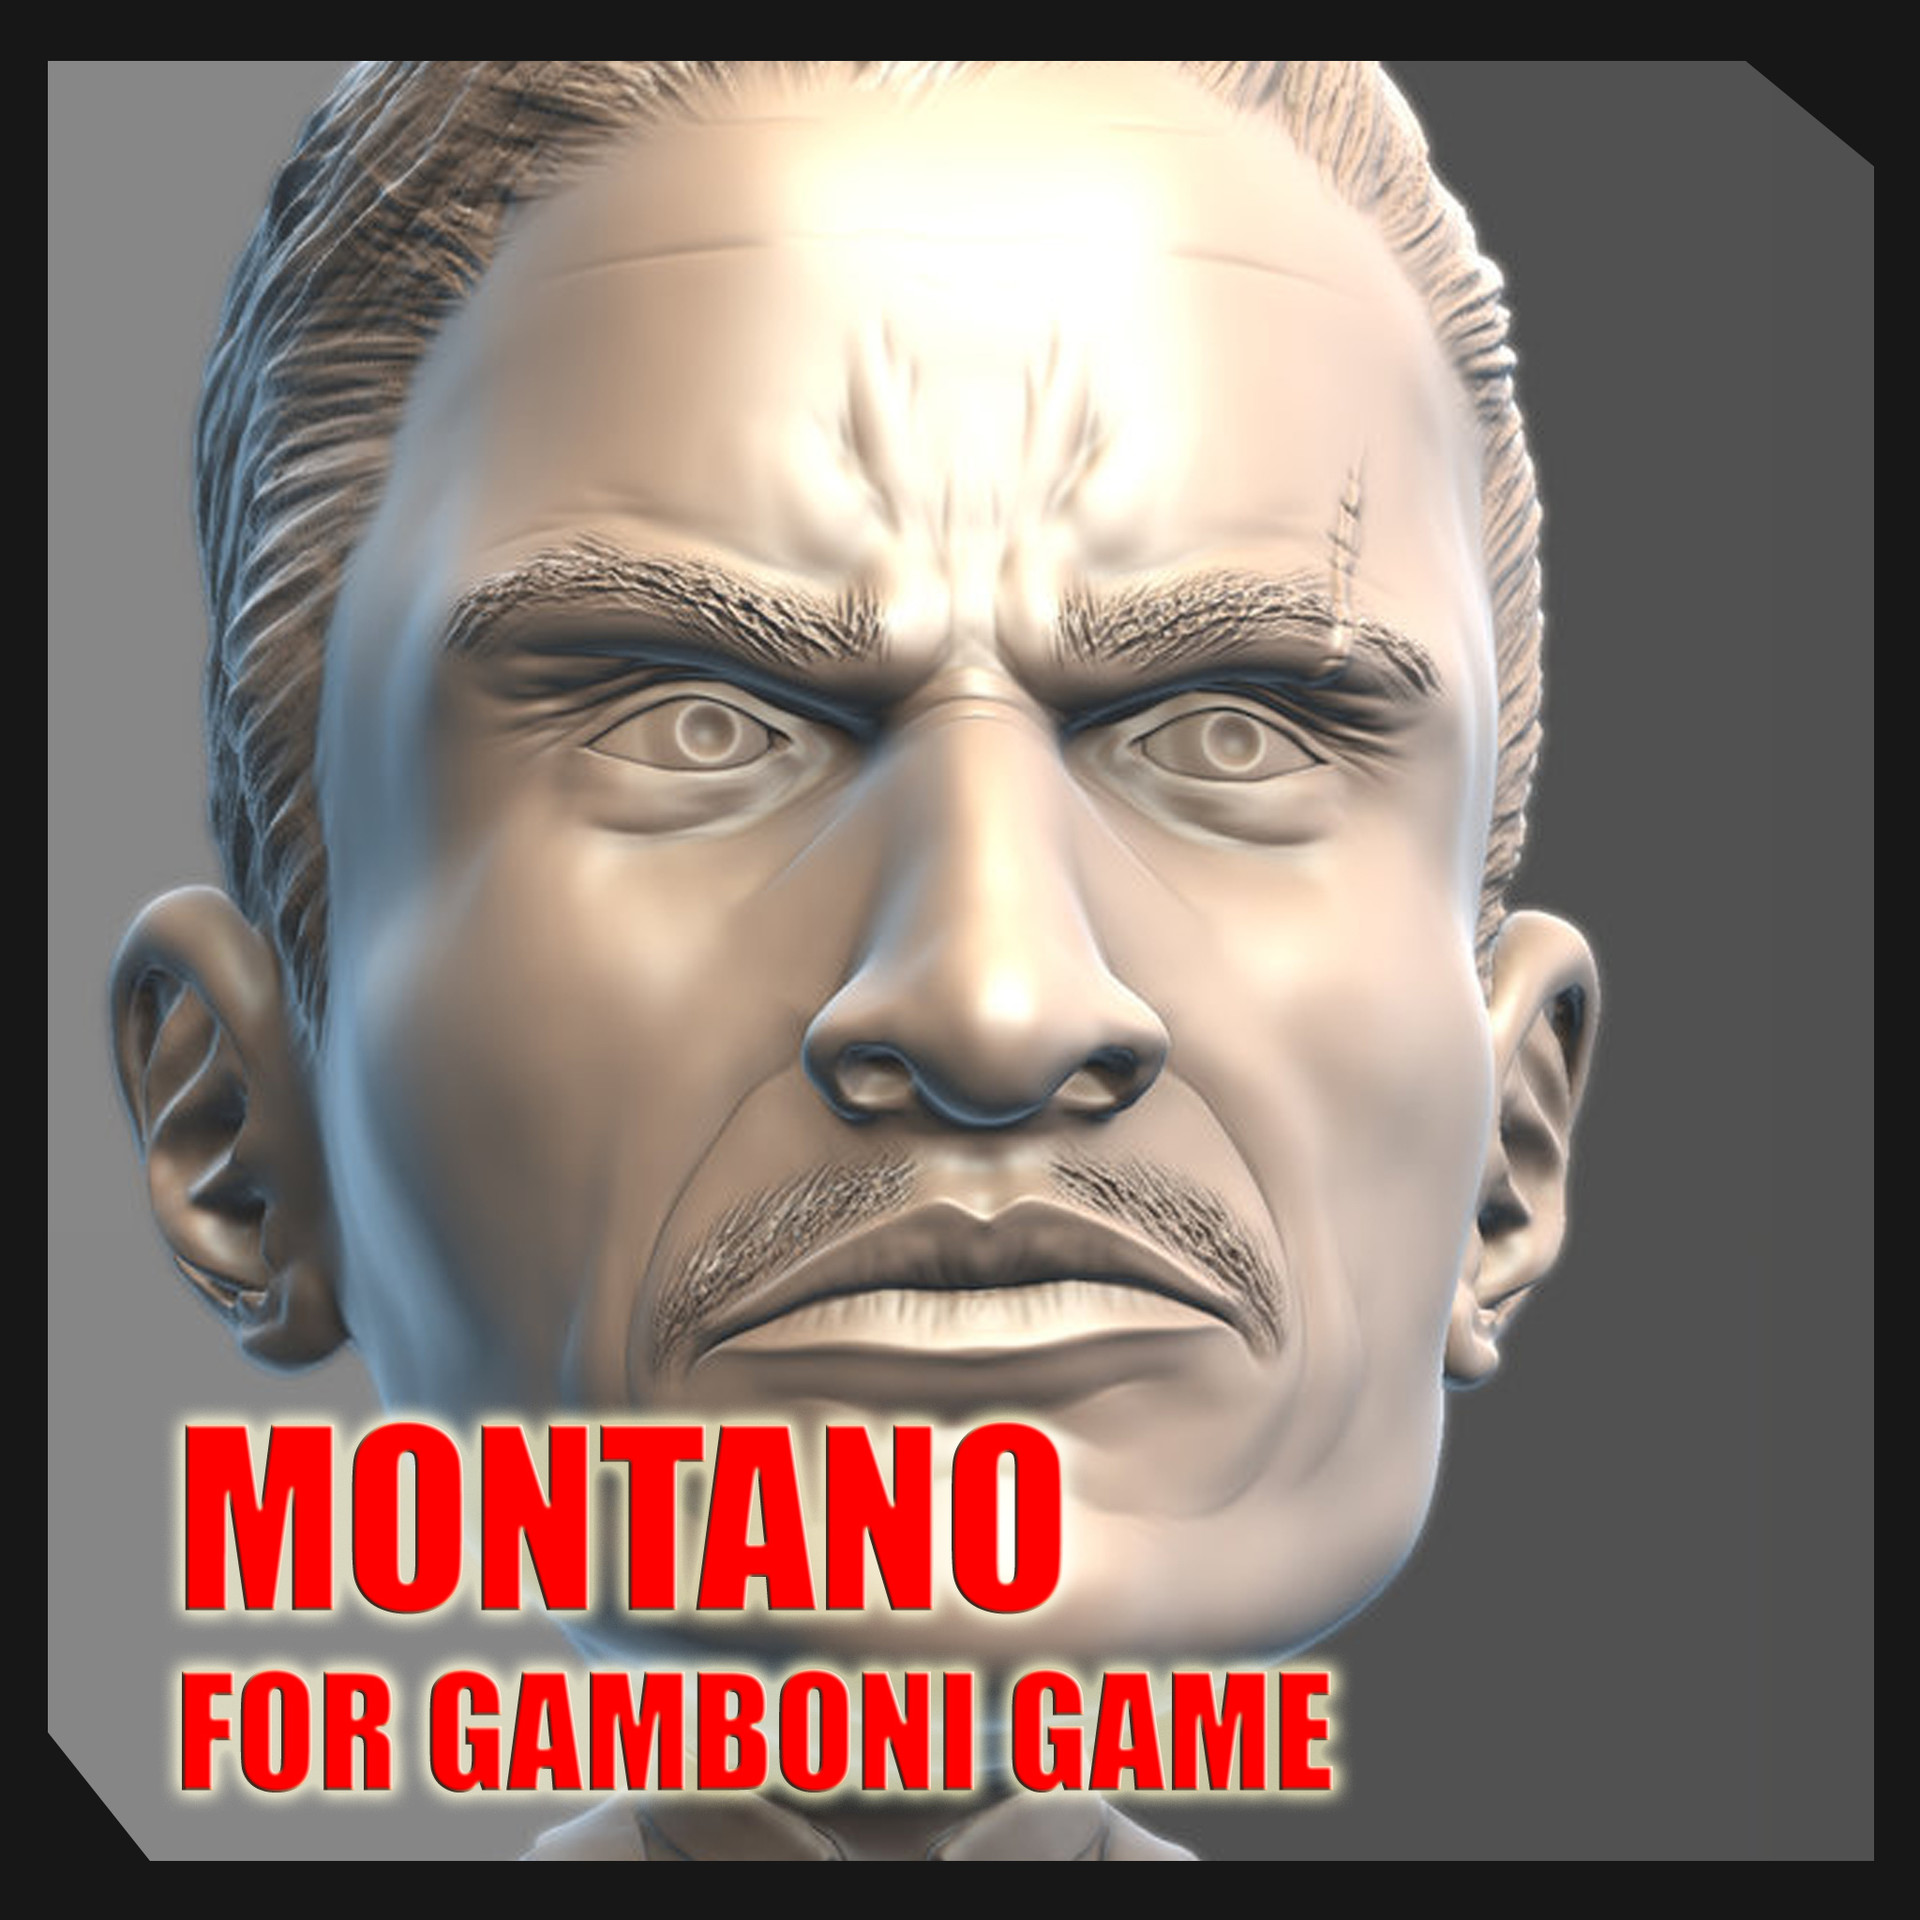 Montano for Gamboni Game by Sergio Mengual